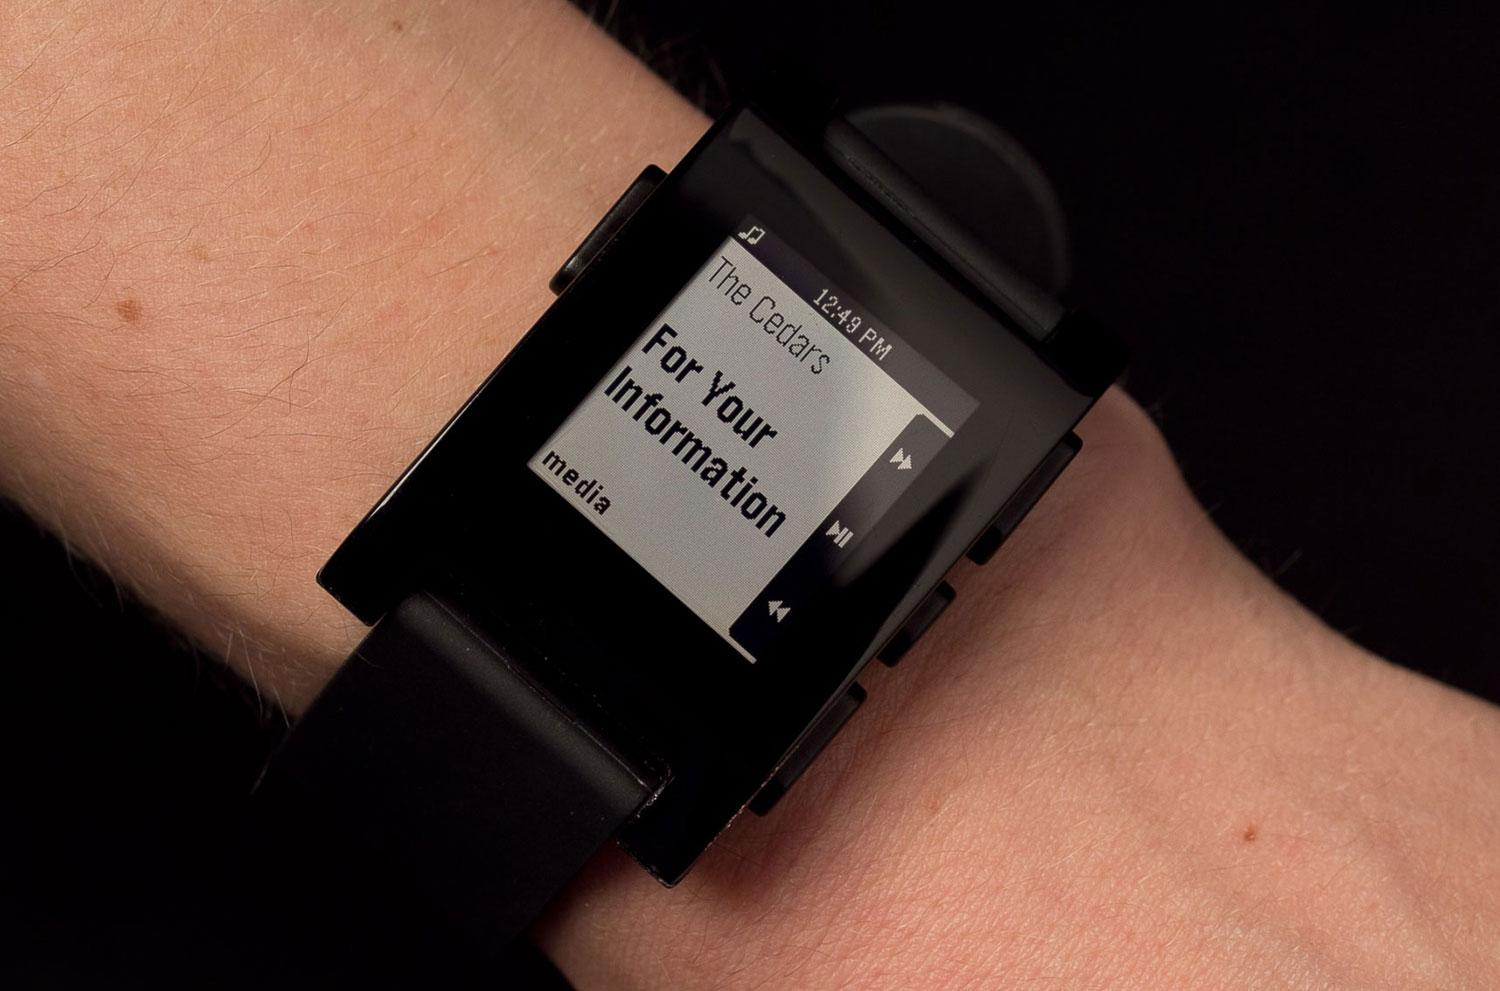 Pebble has Already Sold more than 1 Million of Watches